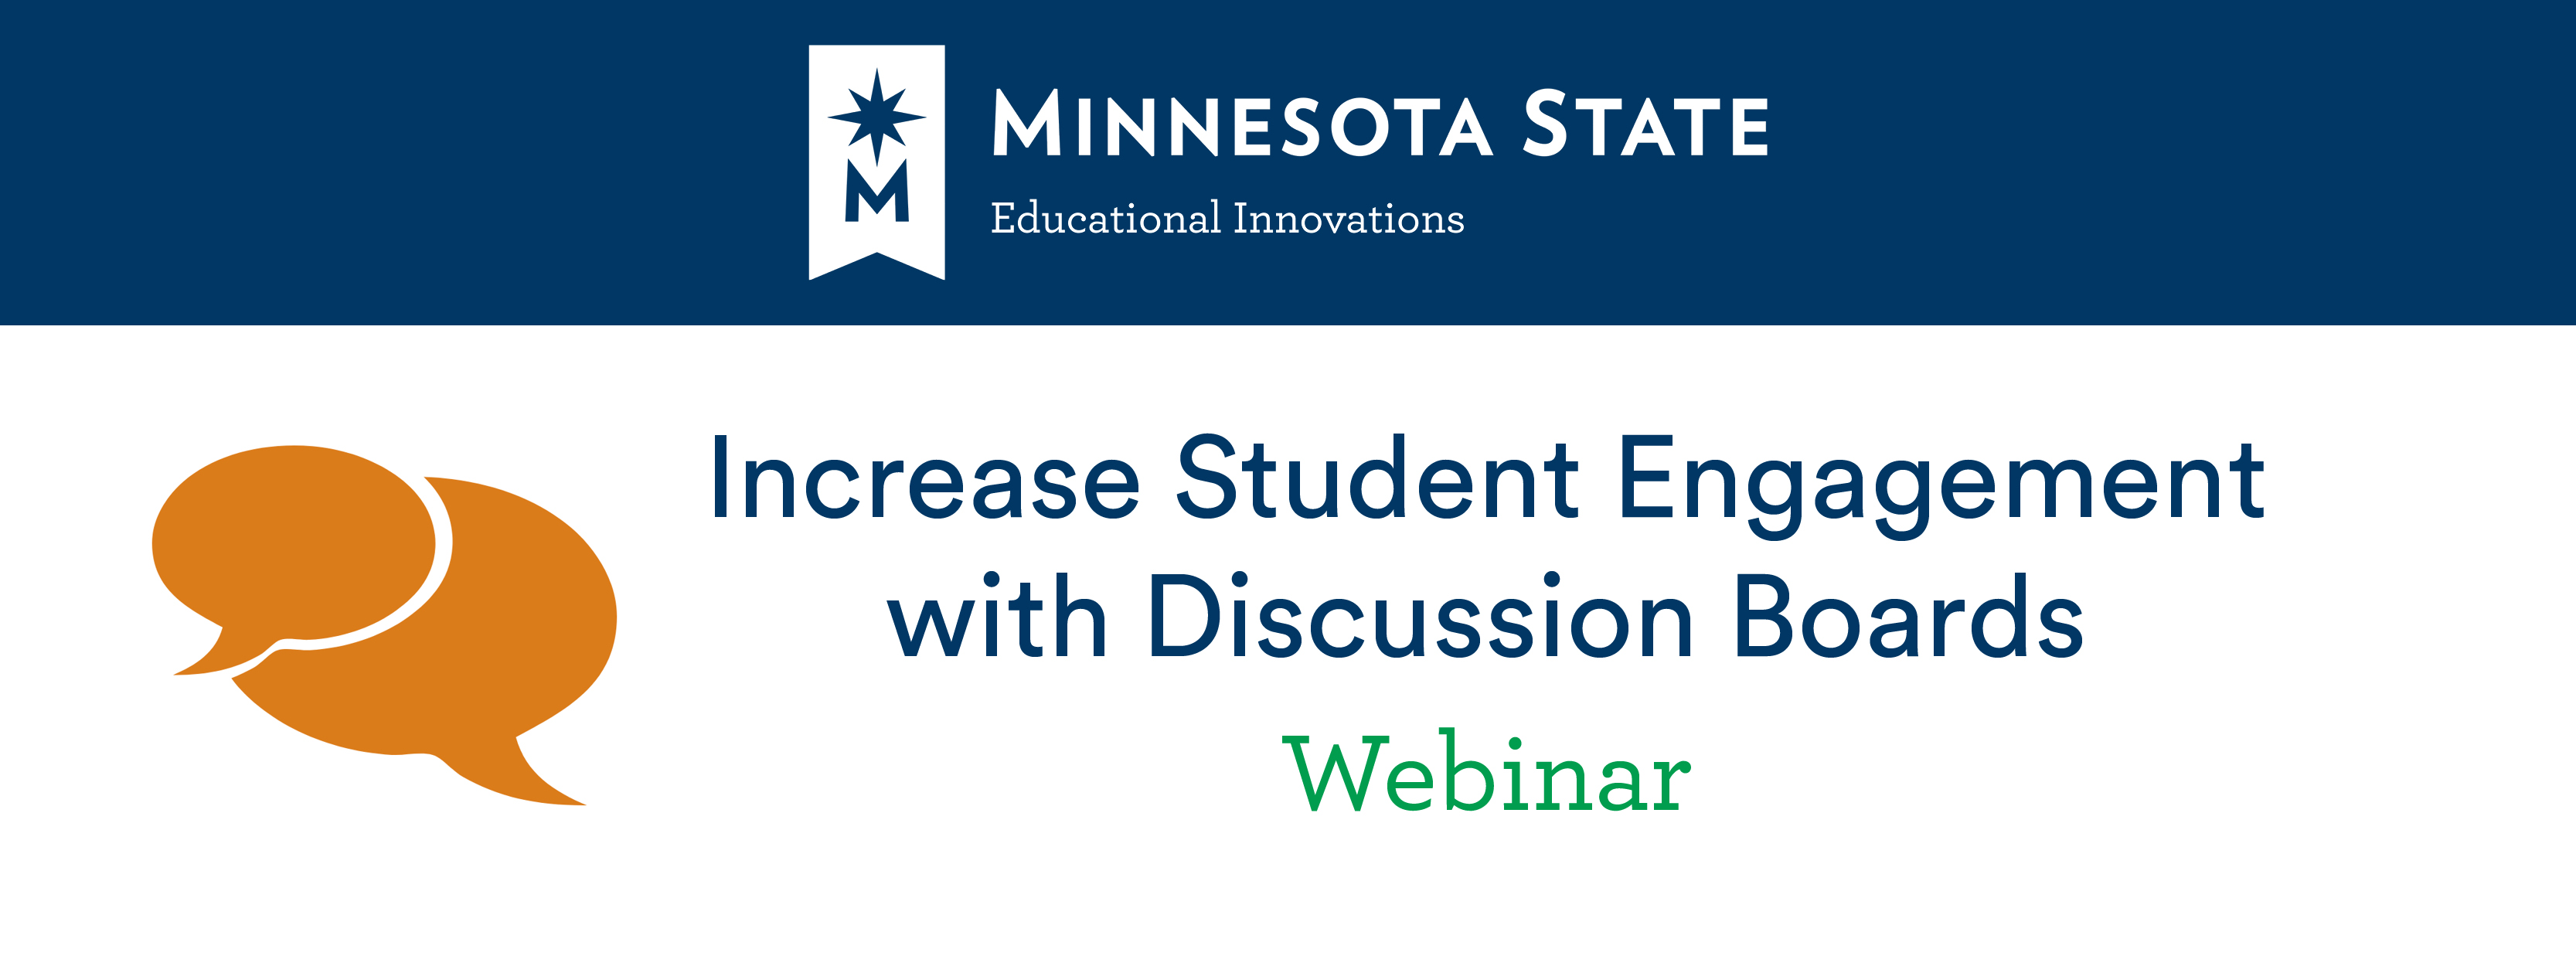 Increase student engagement with discussion boards